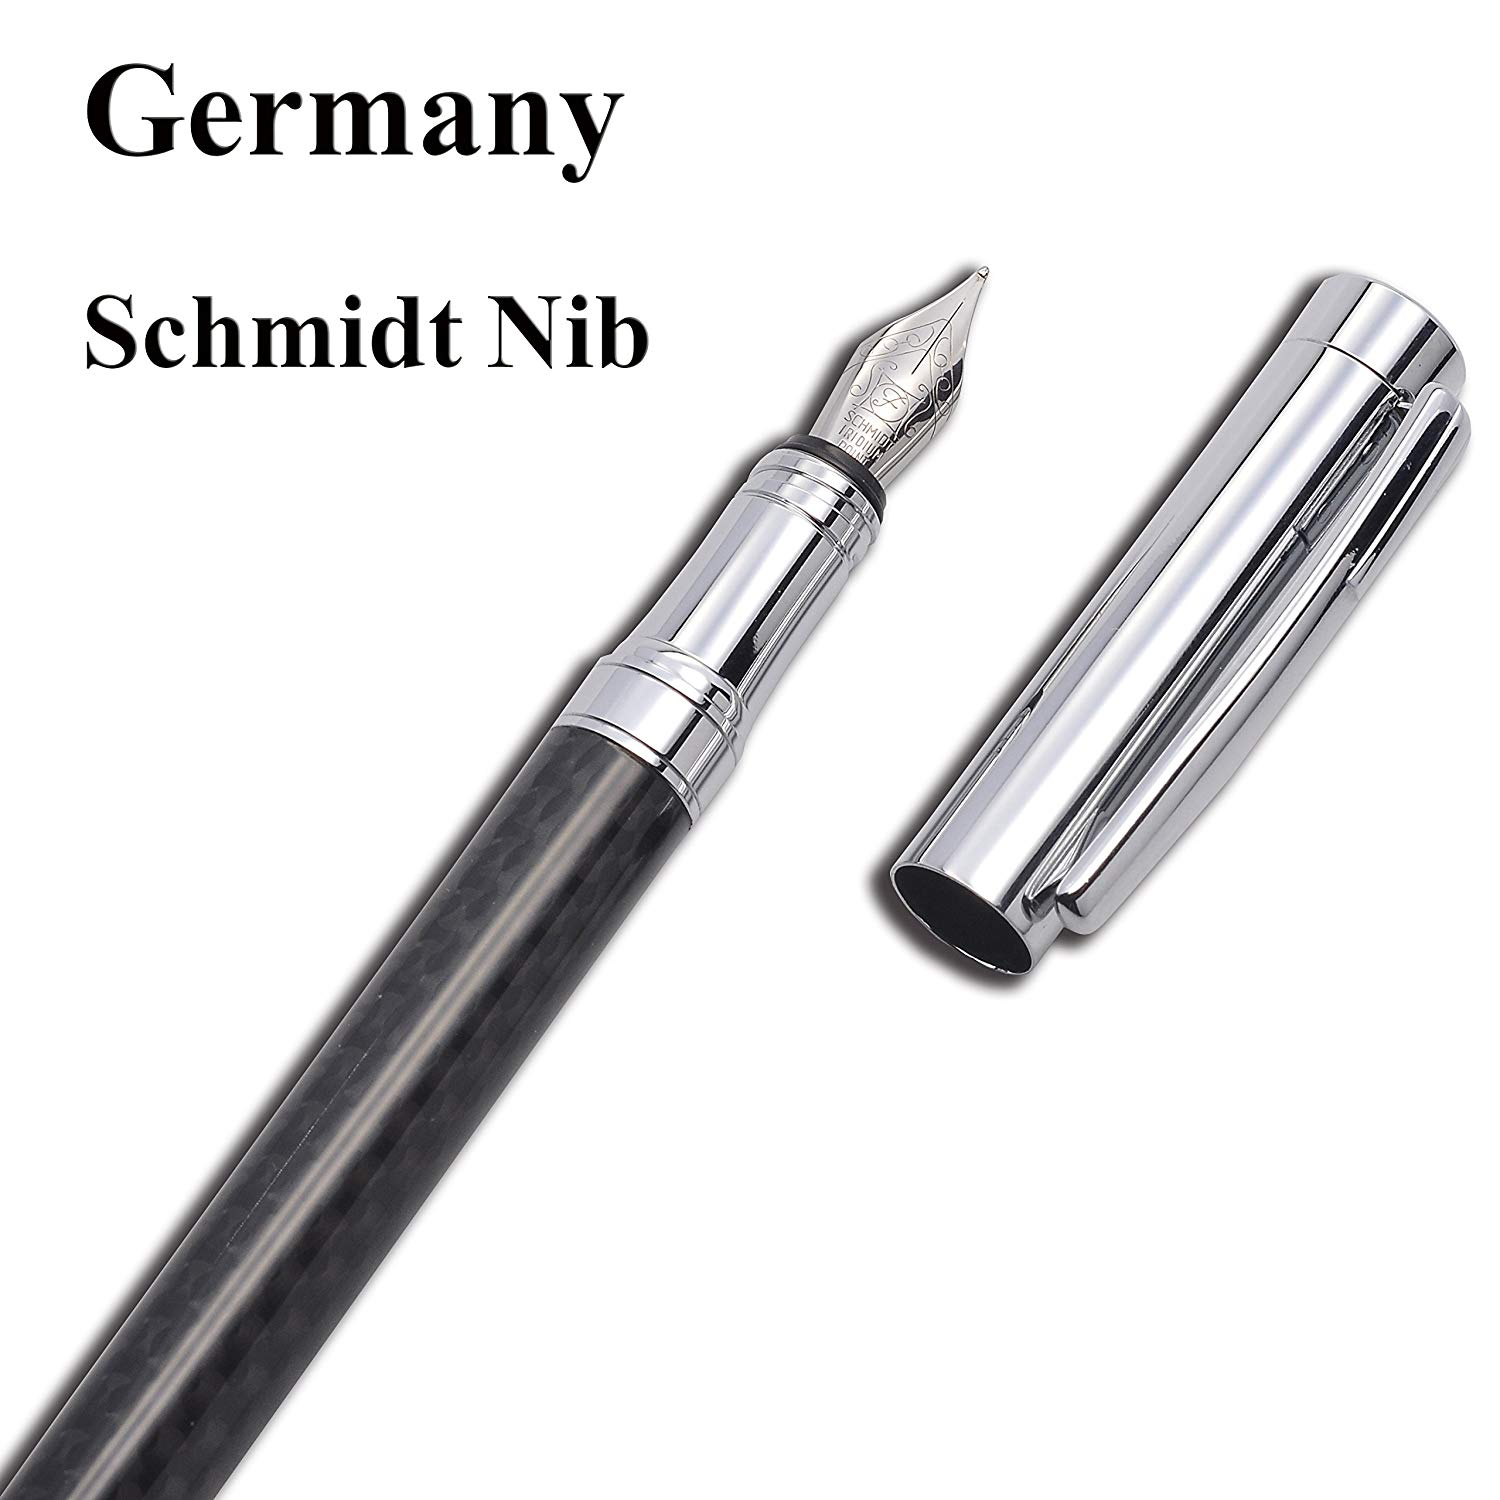 2987875a2171 Get Quotations · LACHIEVA Luxury Carbon Fiber Fountain Pen with Nice Box  Pack Germany Schmidt Nib- Perfect for